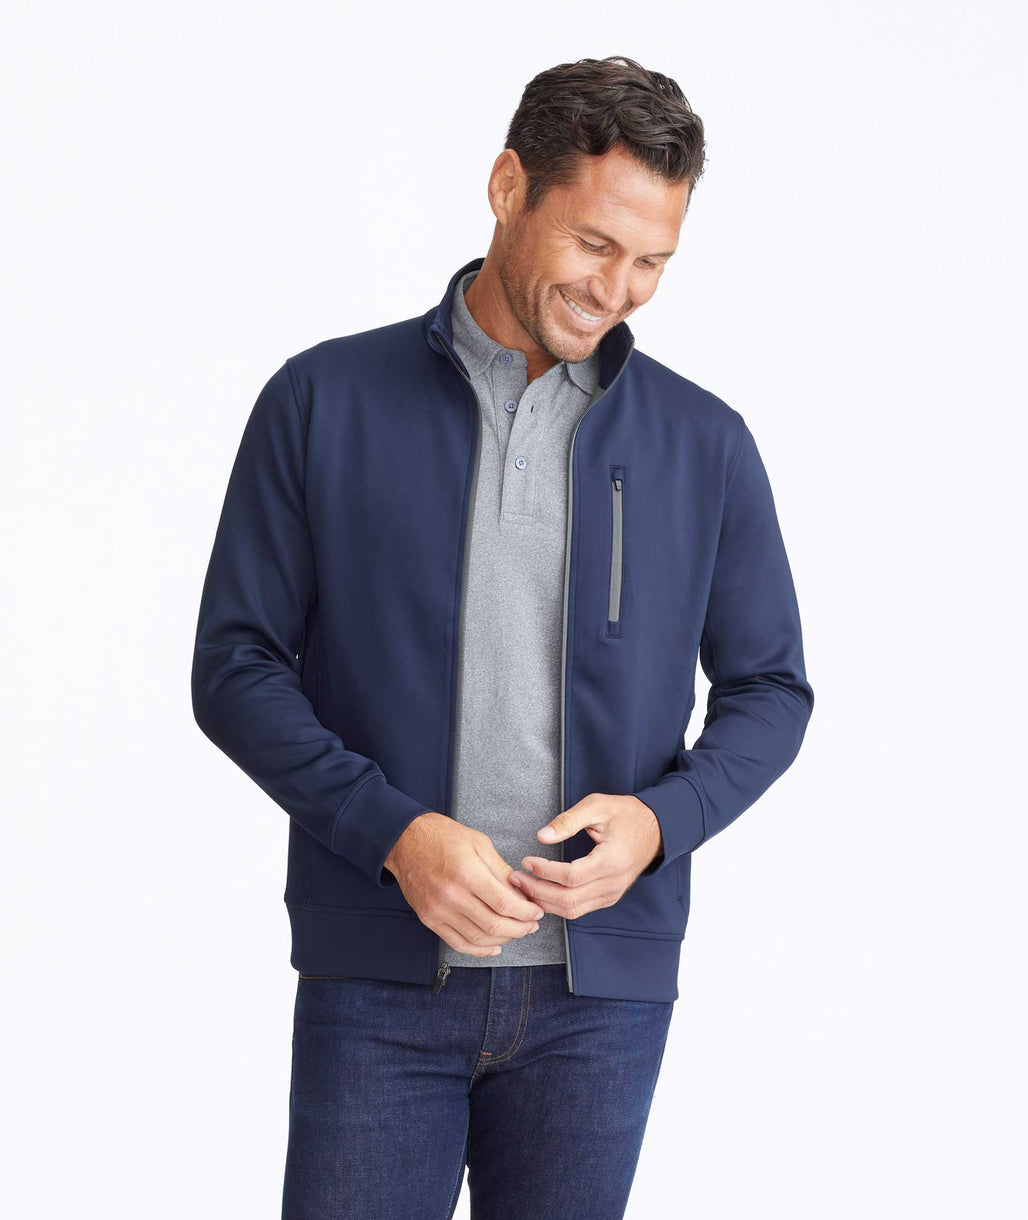 Model wearing a Navy Performance Full-Zip